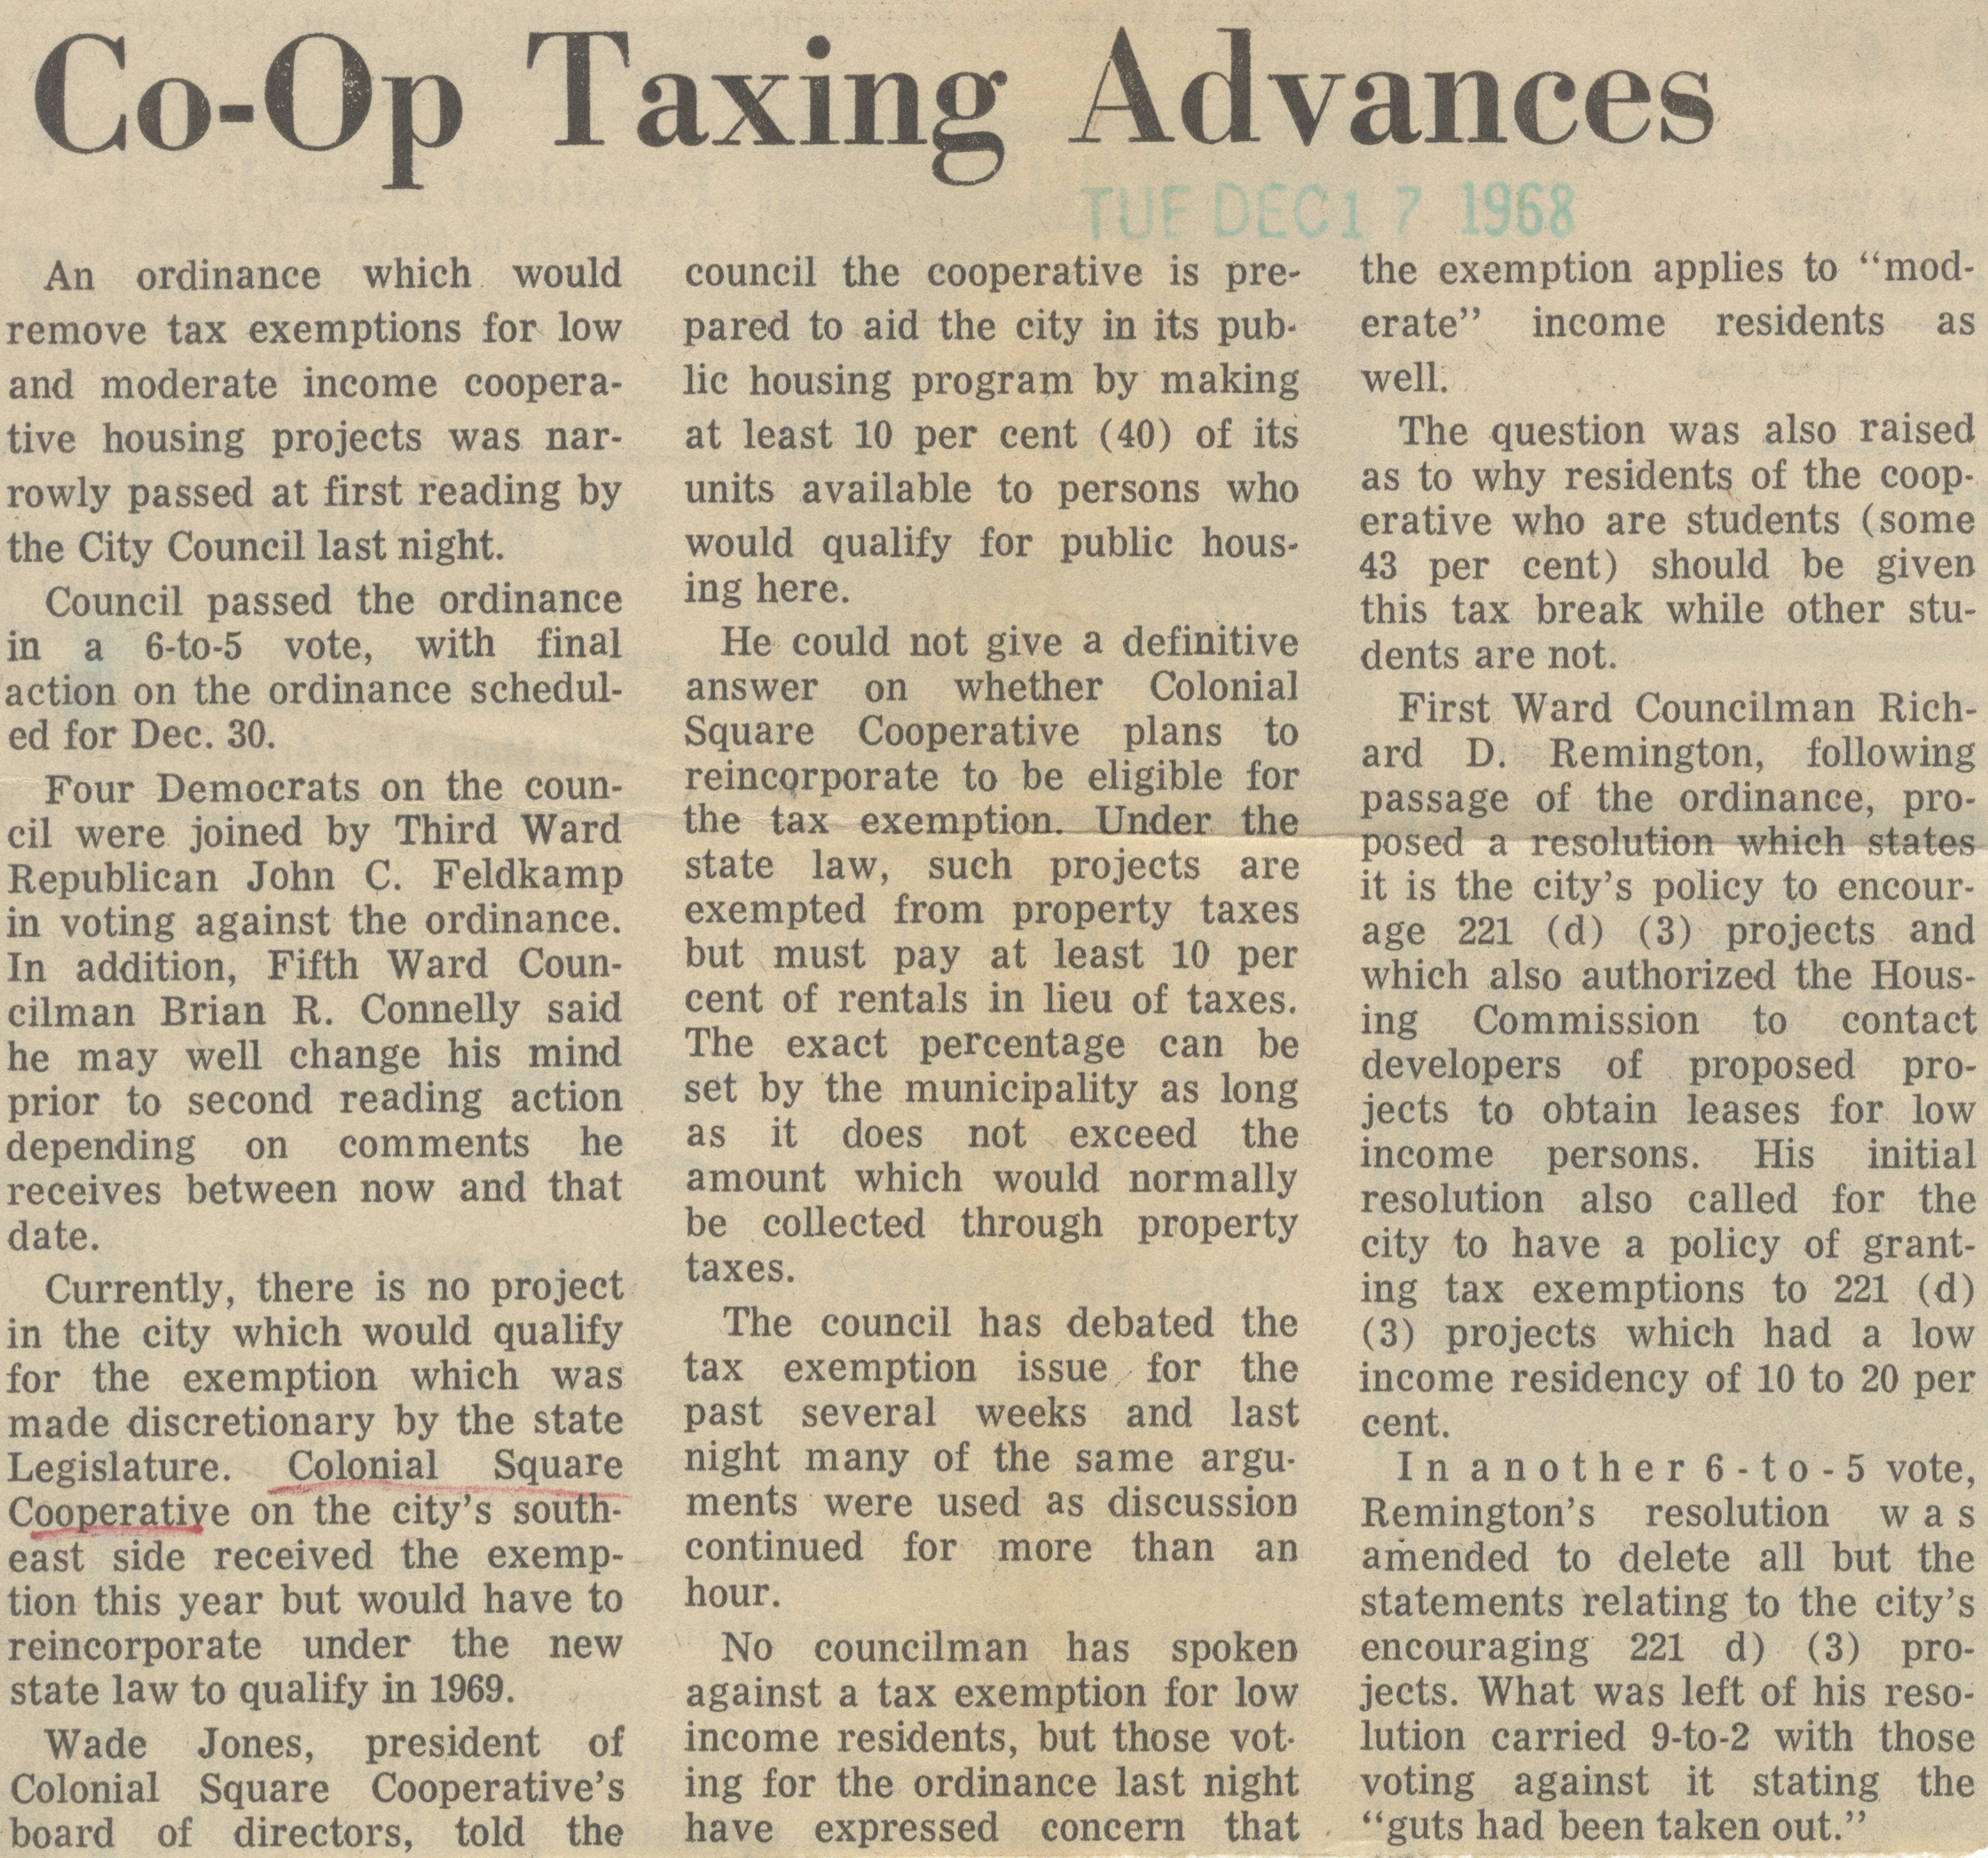 Co-Op Taxing Advances image